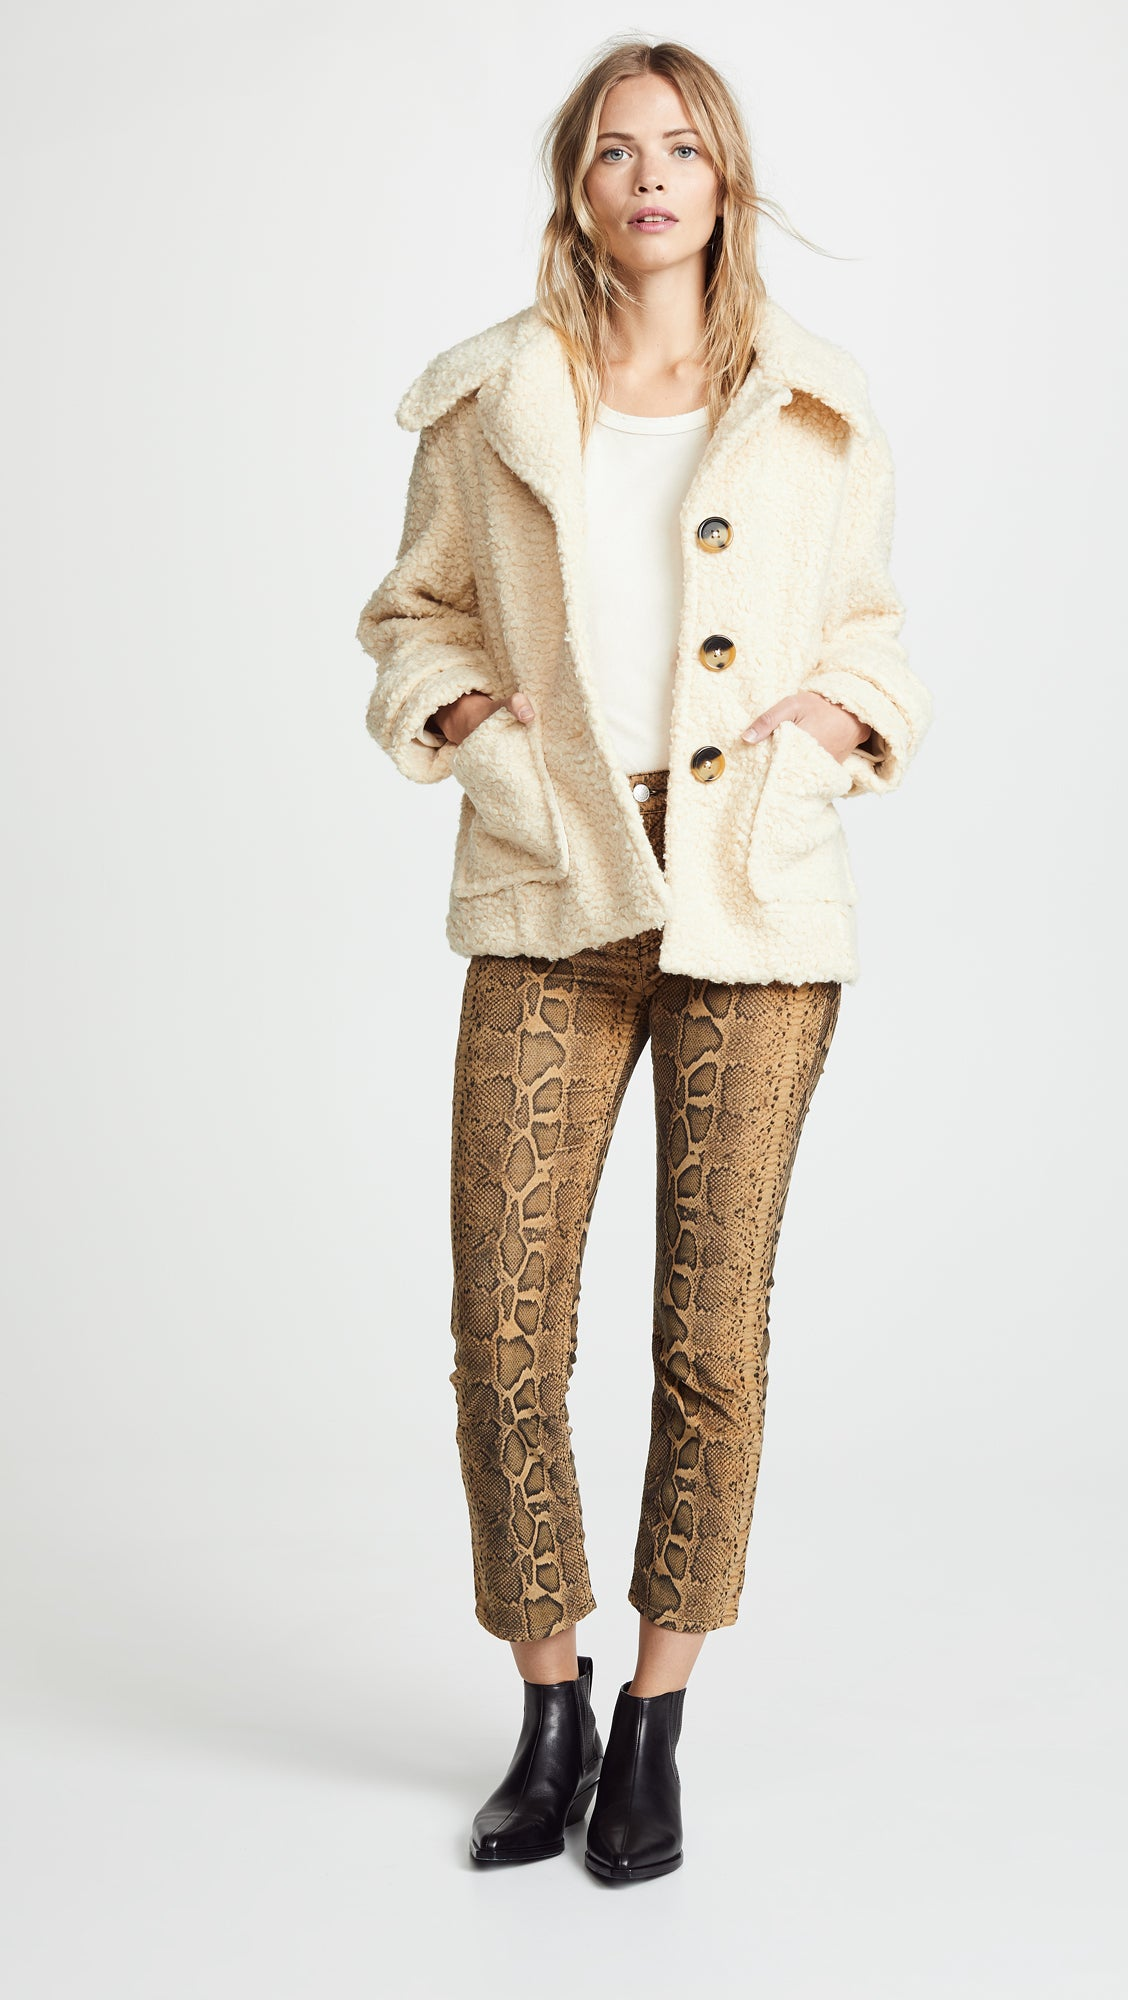 Free People So Soft Cozy Peacoat Ivory Coat Jacket Fur | ShopAA